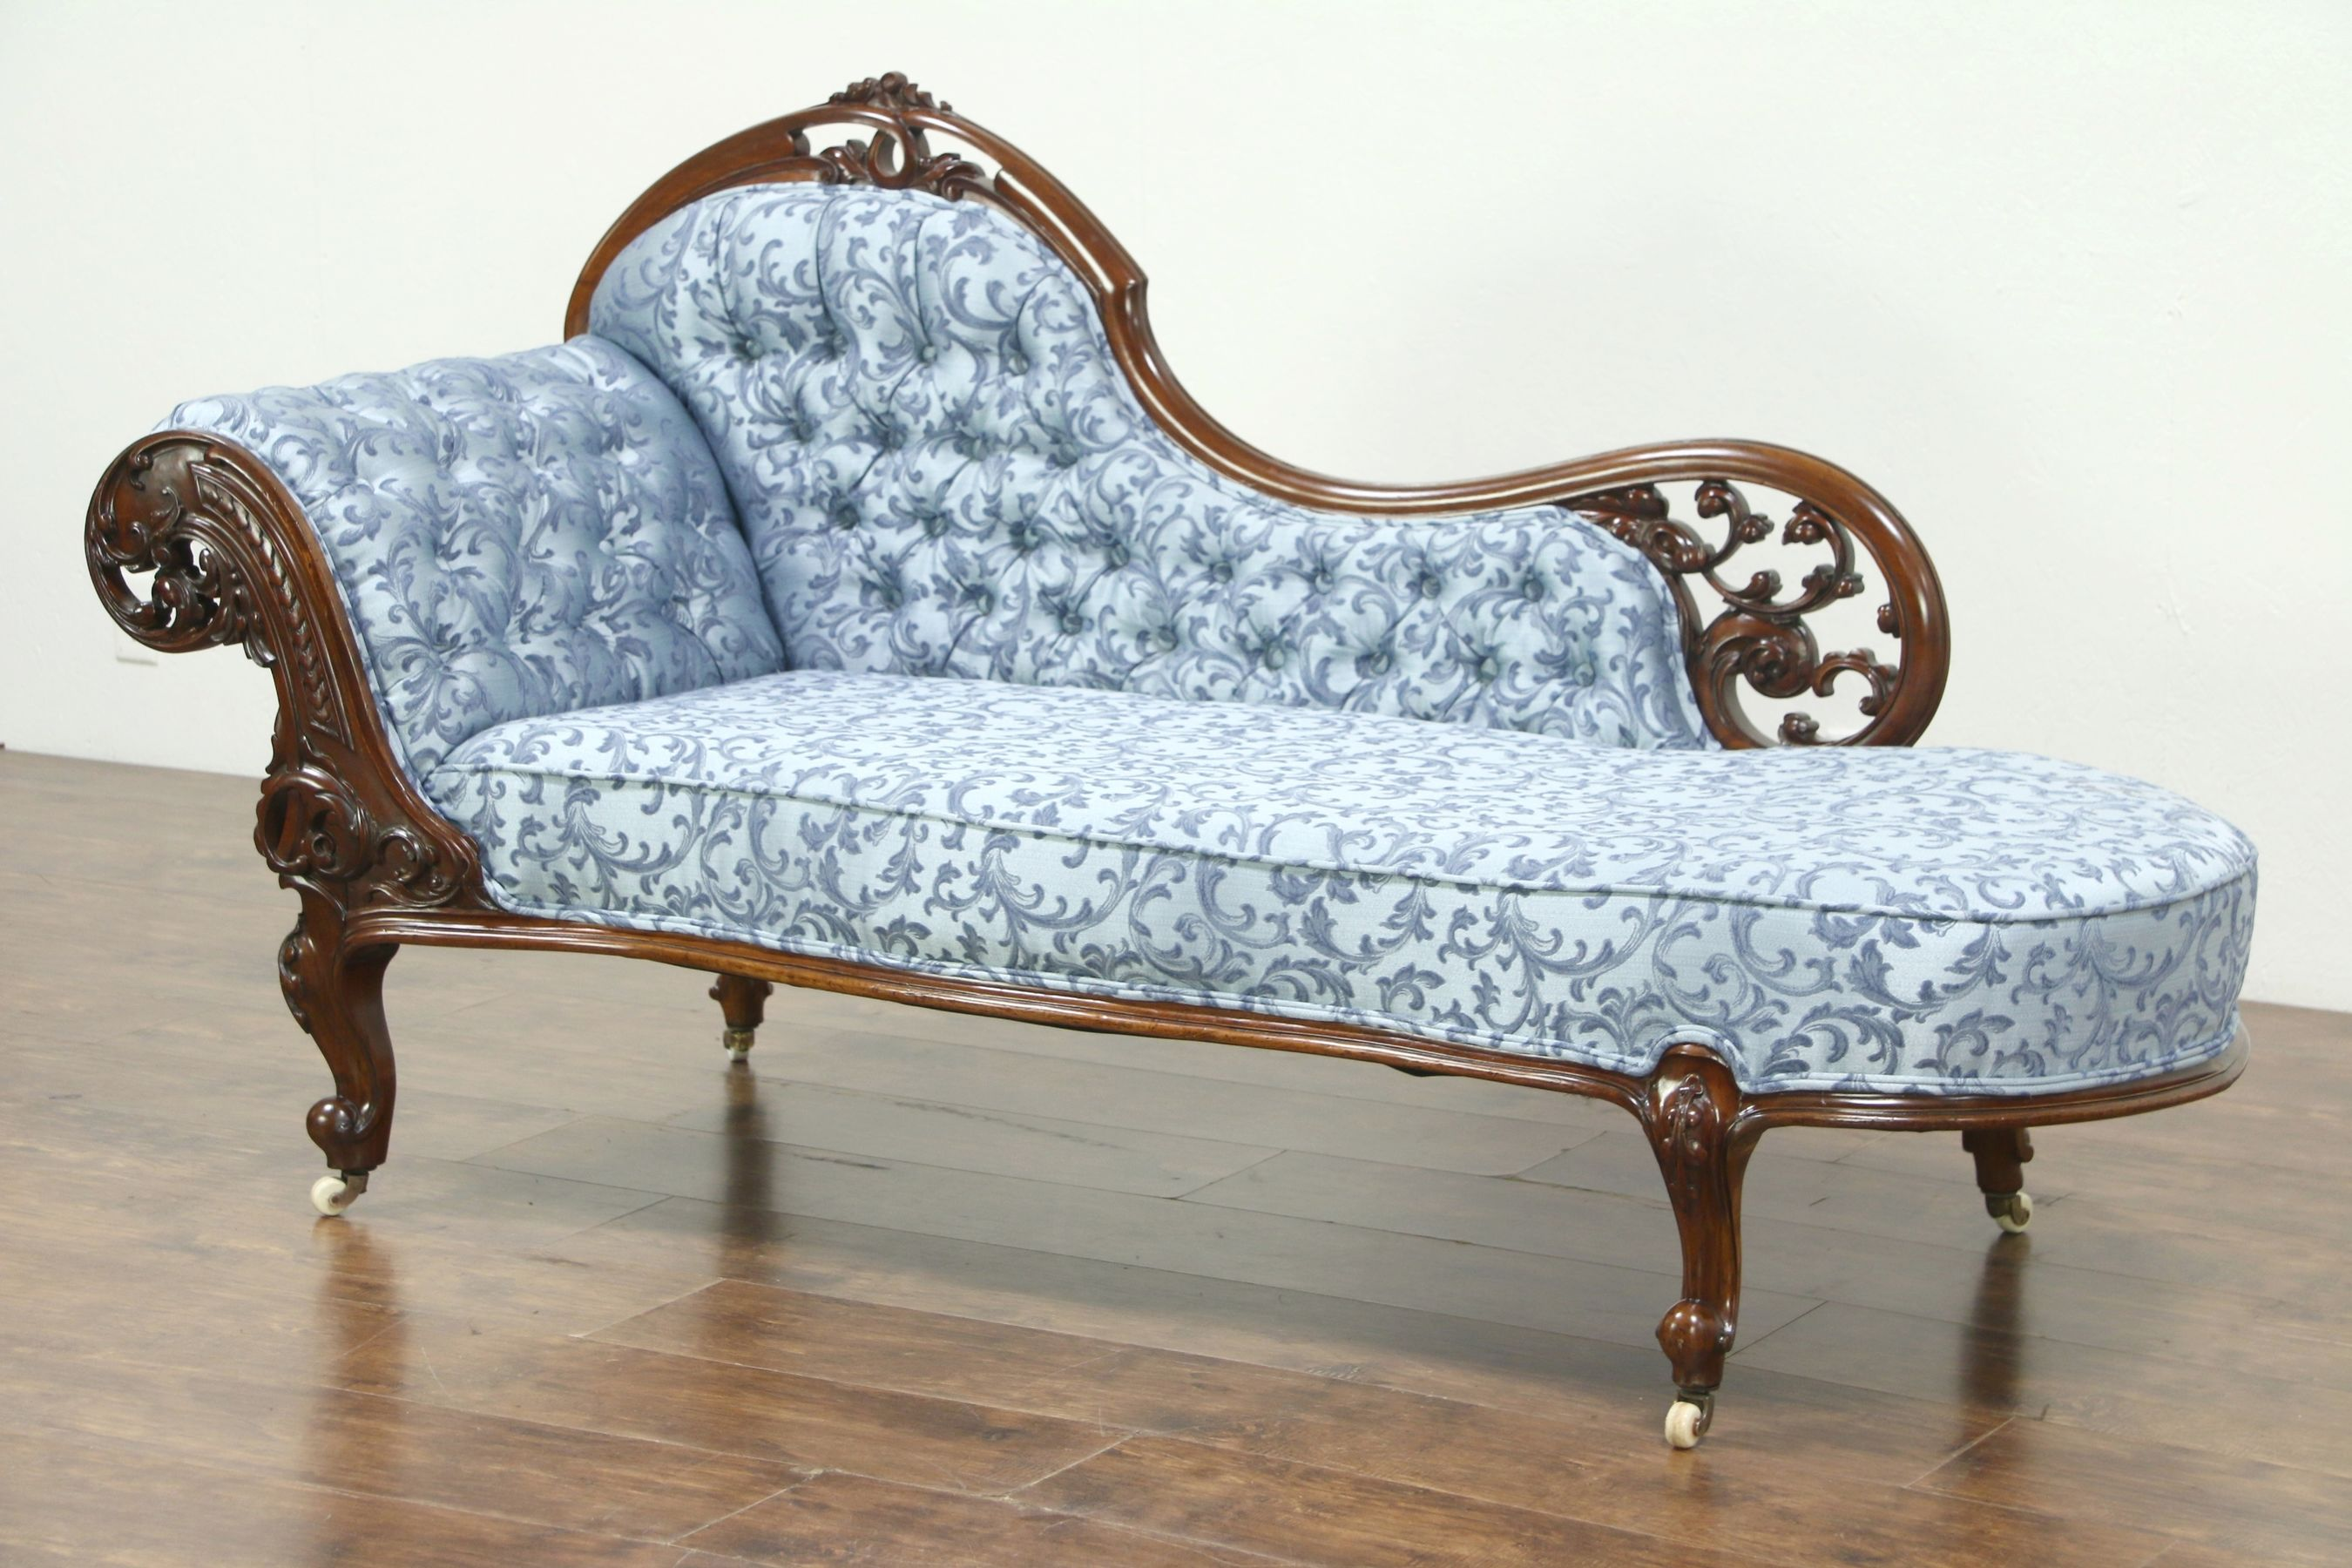 SOLD - Carved Mahogany Antique Recamier, Chaise or Fainting Couch, England  #28747 - Harp Gallery